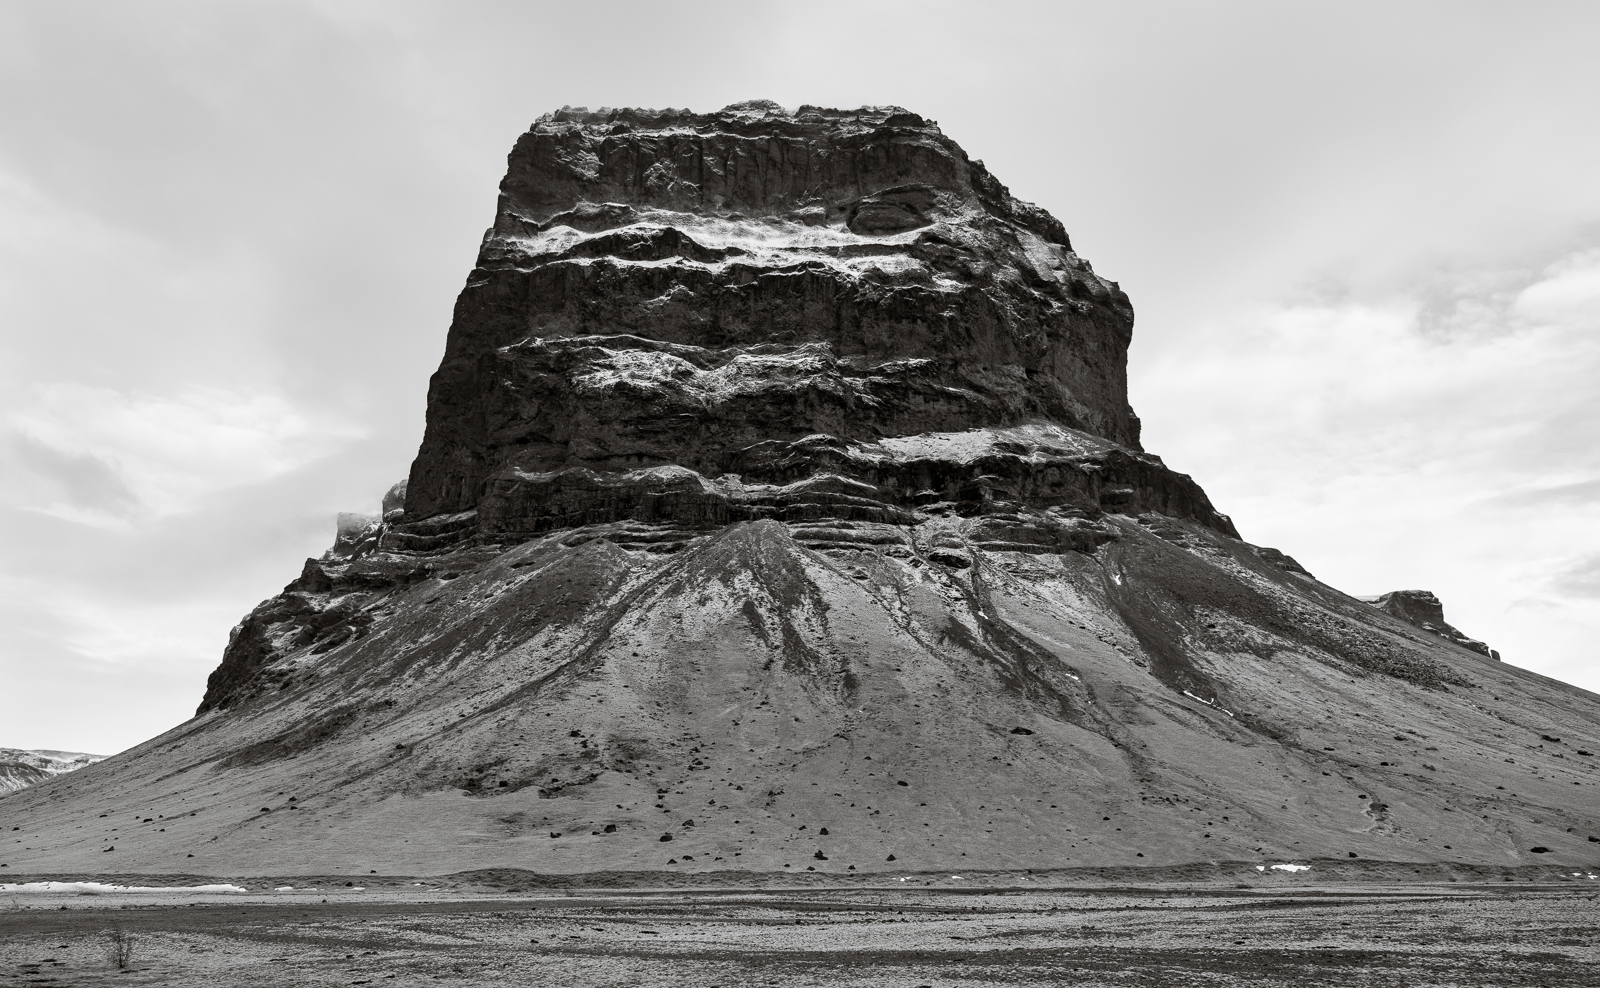 Mount Lómagnúpur, home of the giant Járngrímur